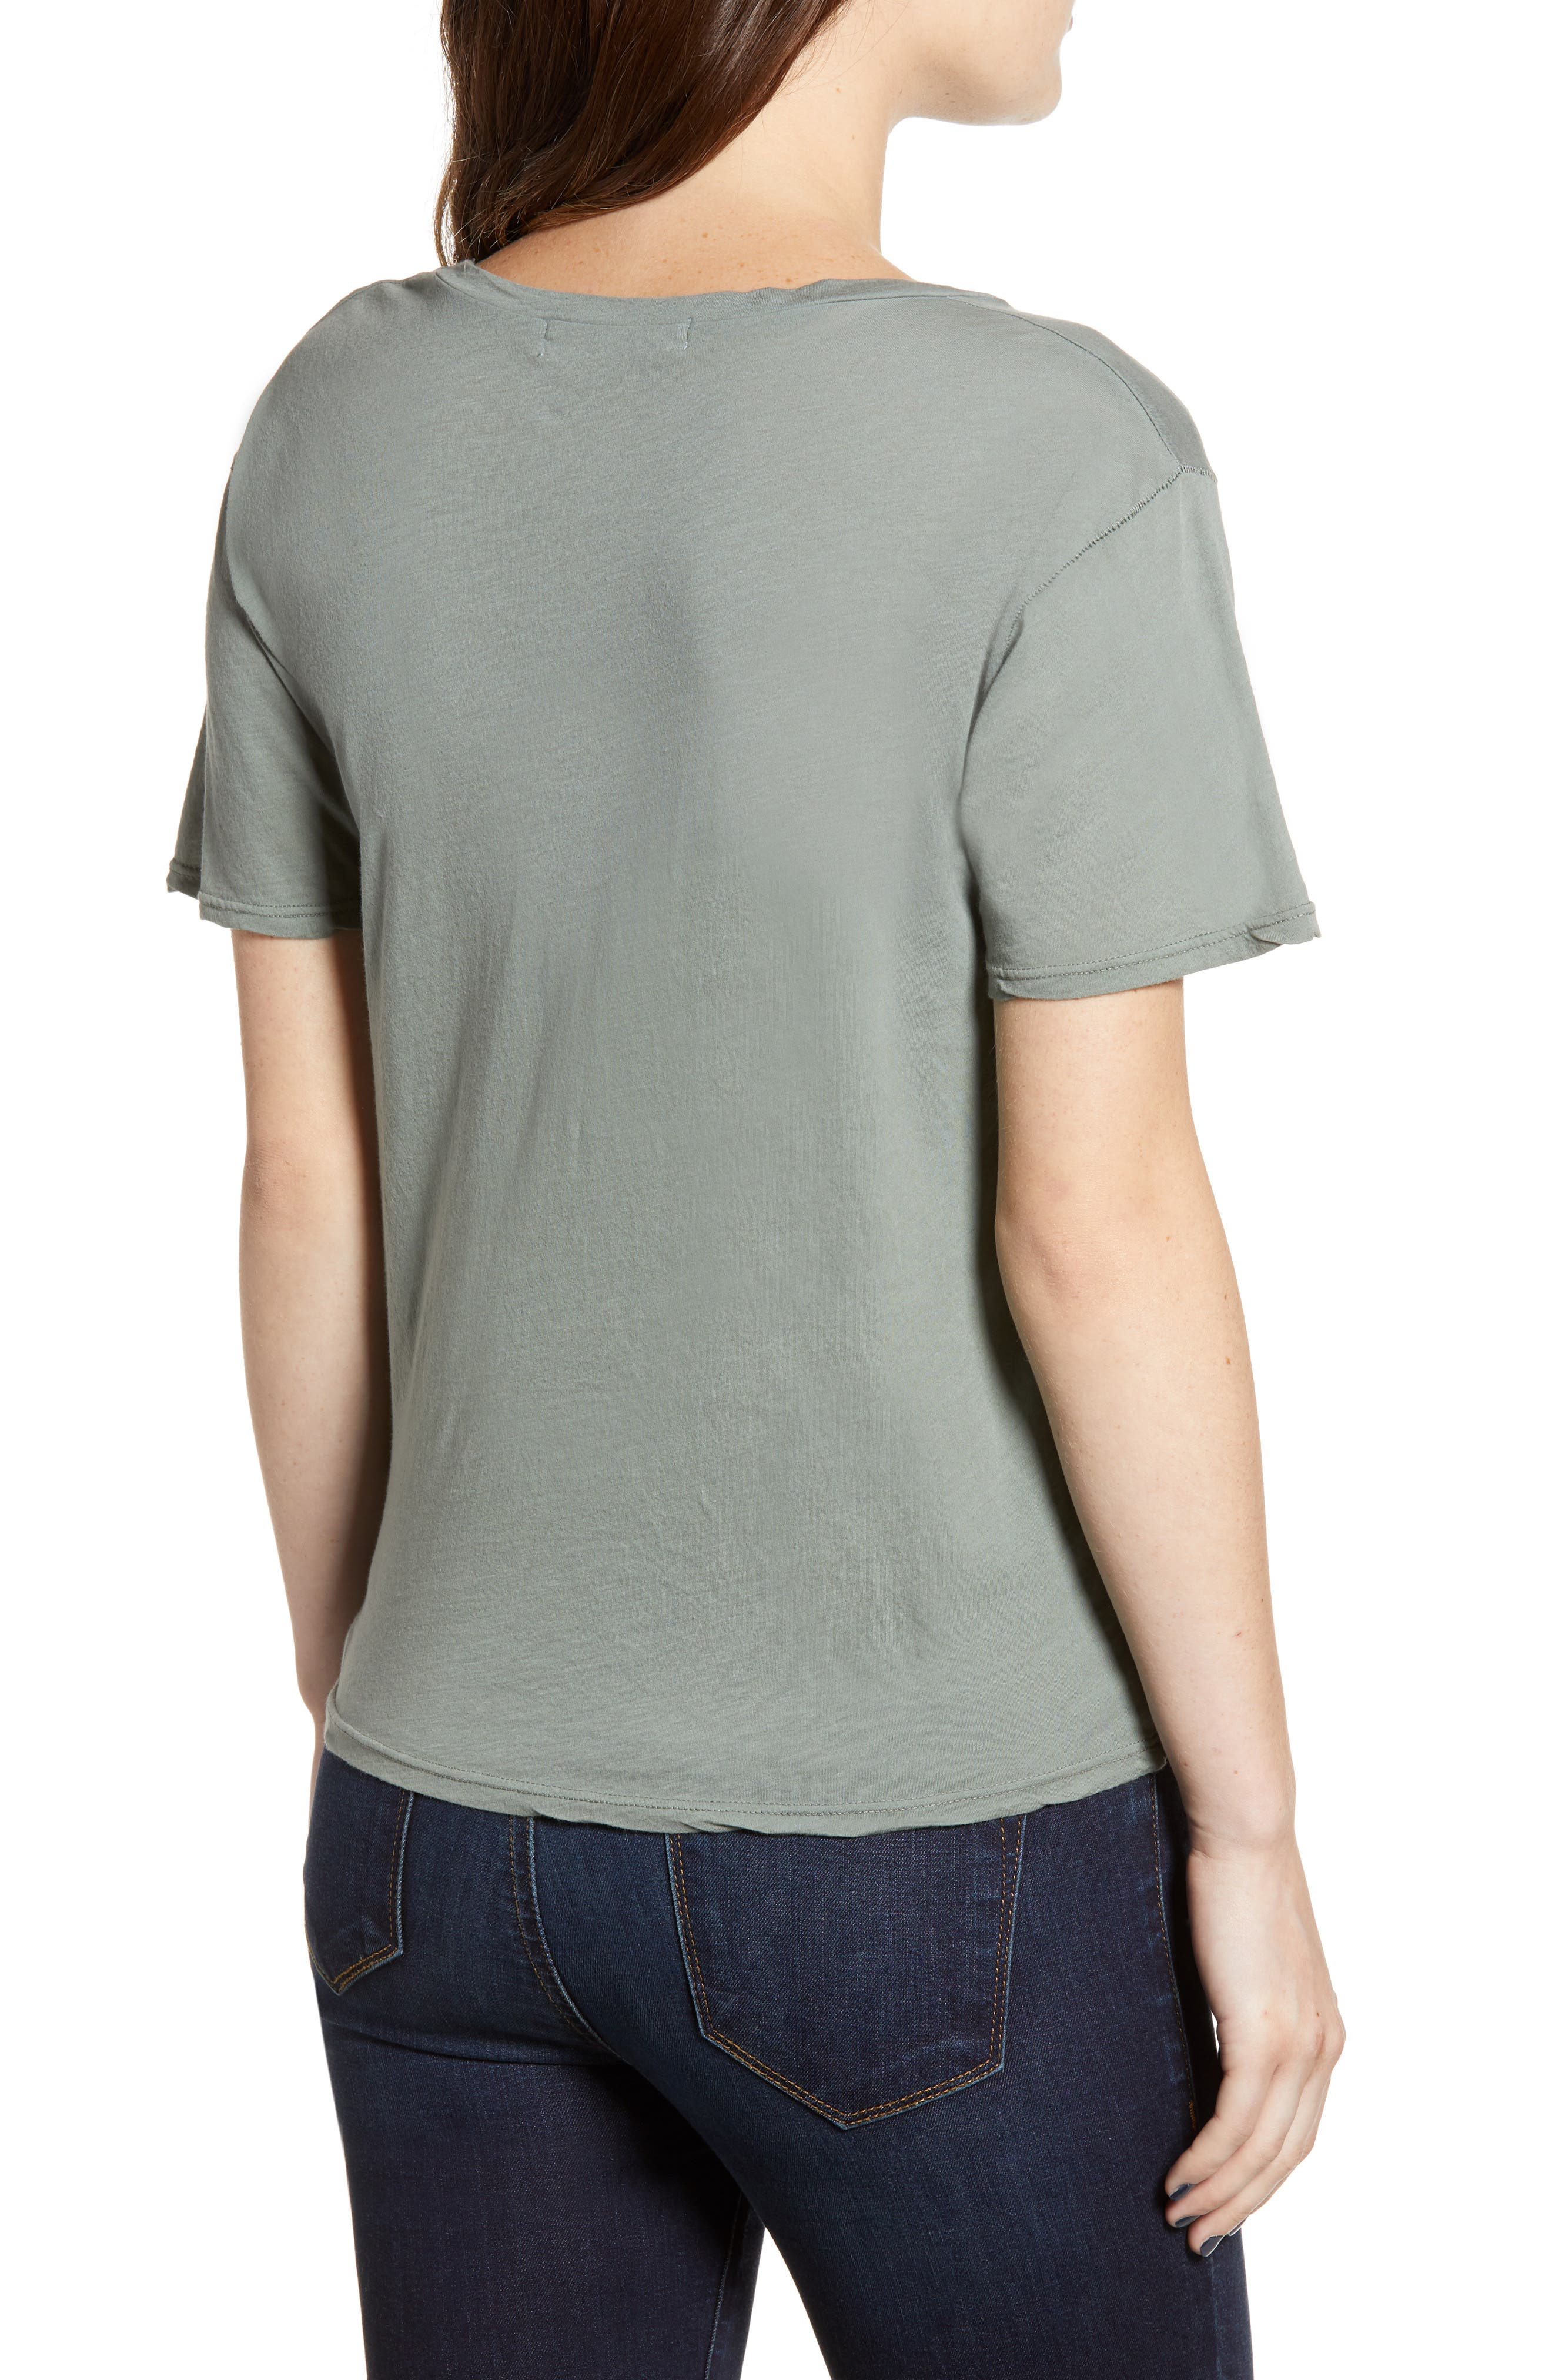 PROJECT SOCIAL T,                             The Softest V-Neck Tee,                             Alternate thumbnail 2, color,                             363